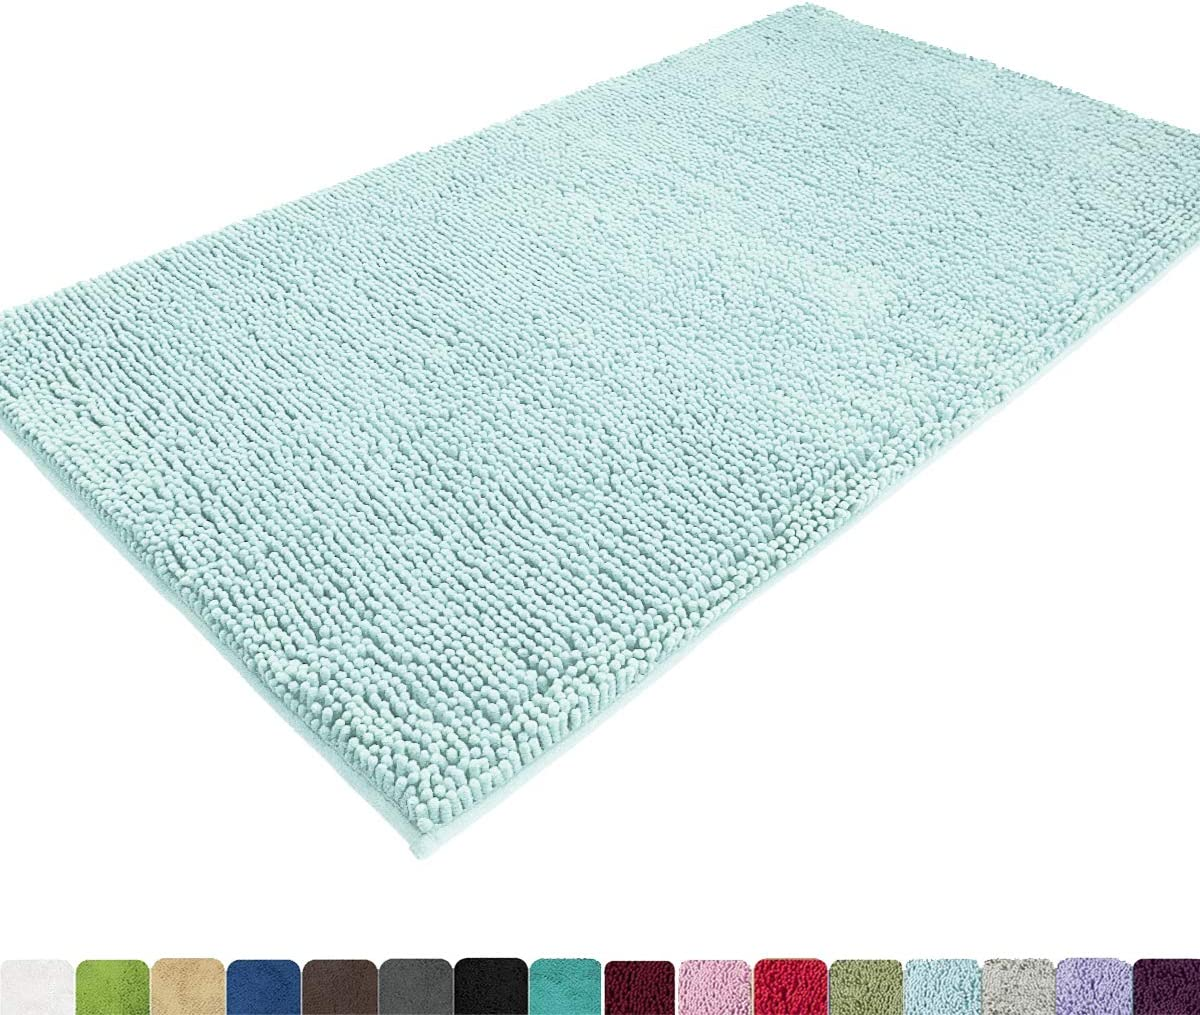 MAYSHINE Absorbent Microfiber Chenille Door Mat Runner for Front Inside Floor Doormats, Quick Drying, Washable-31x59 Inches Spa Blue